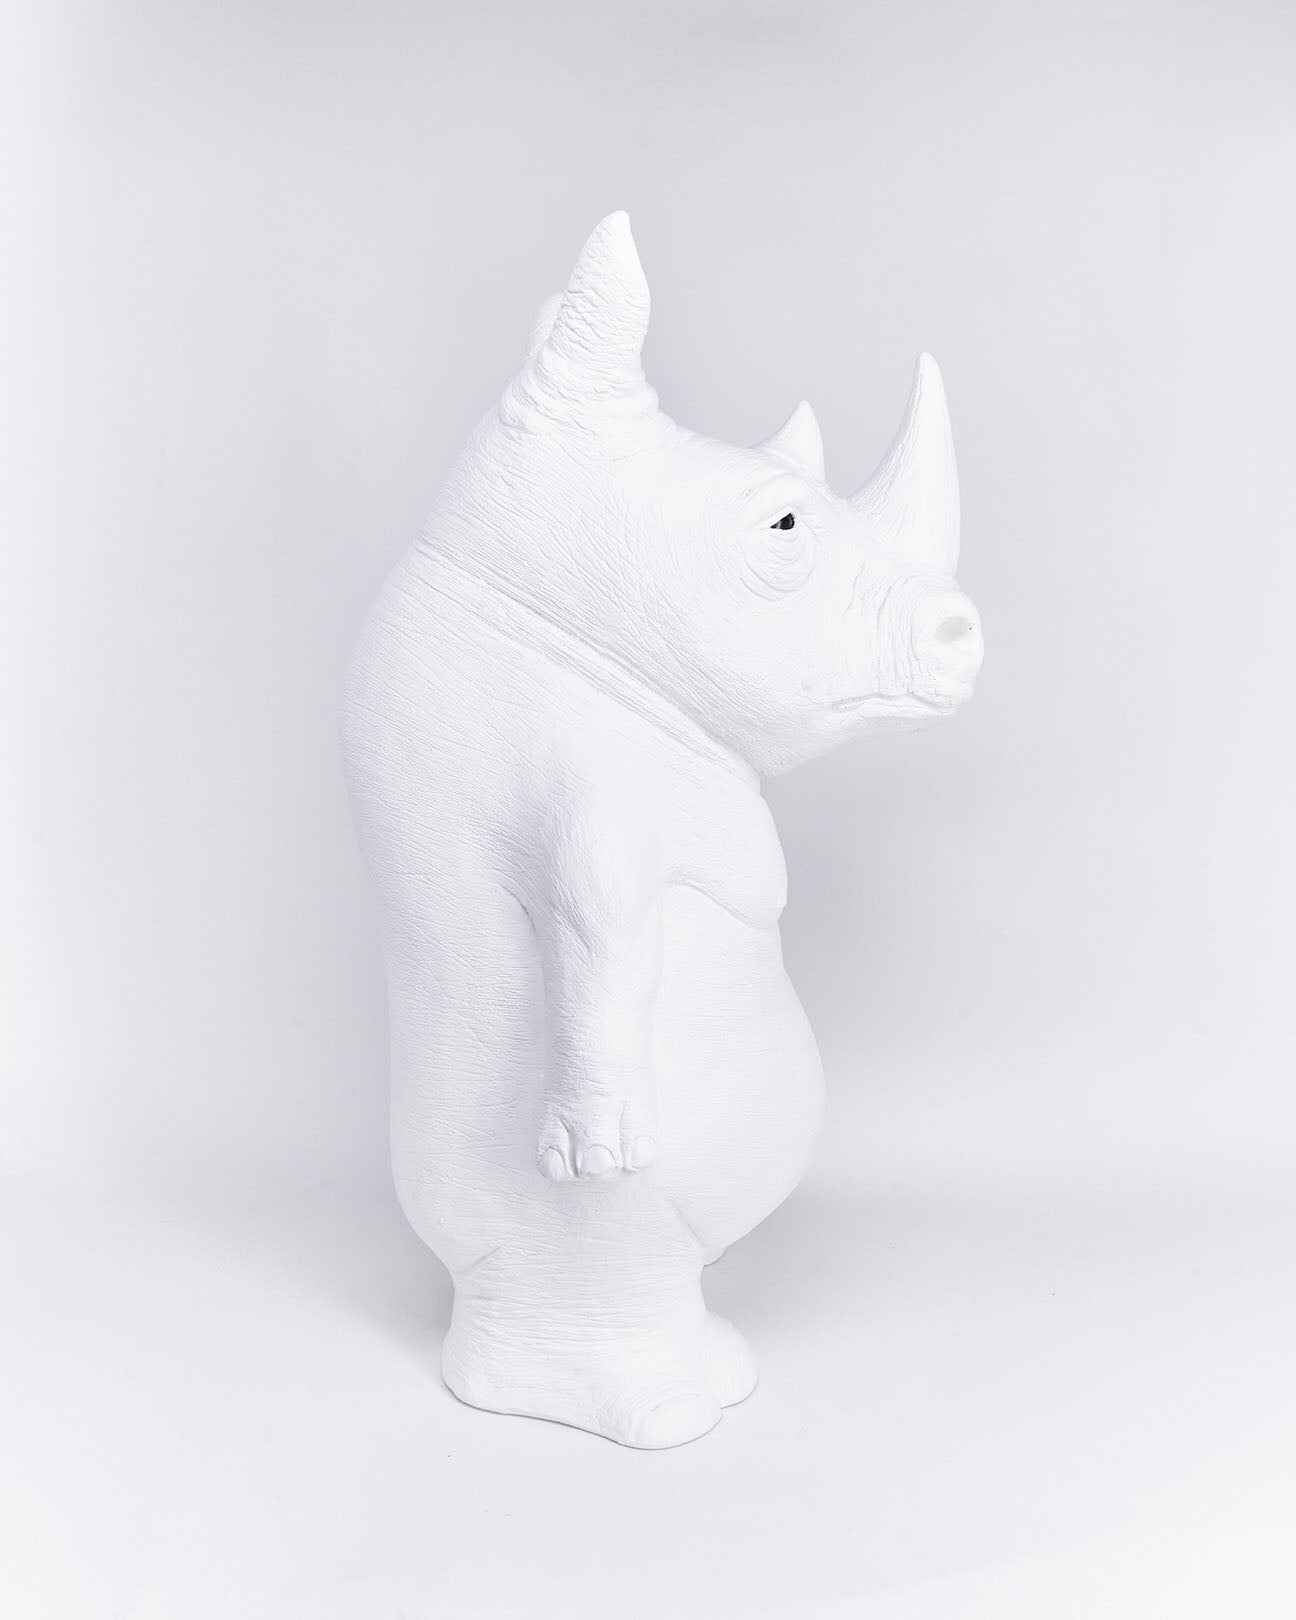 Rhino-ceramic-animal-object-side-handmade-Ornamante-localdesigner-Nuovum-barcelona